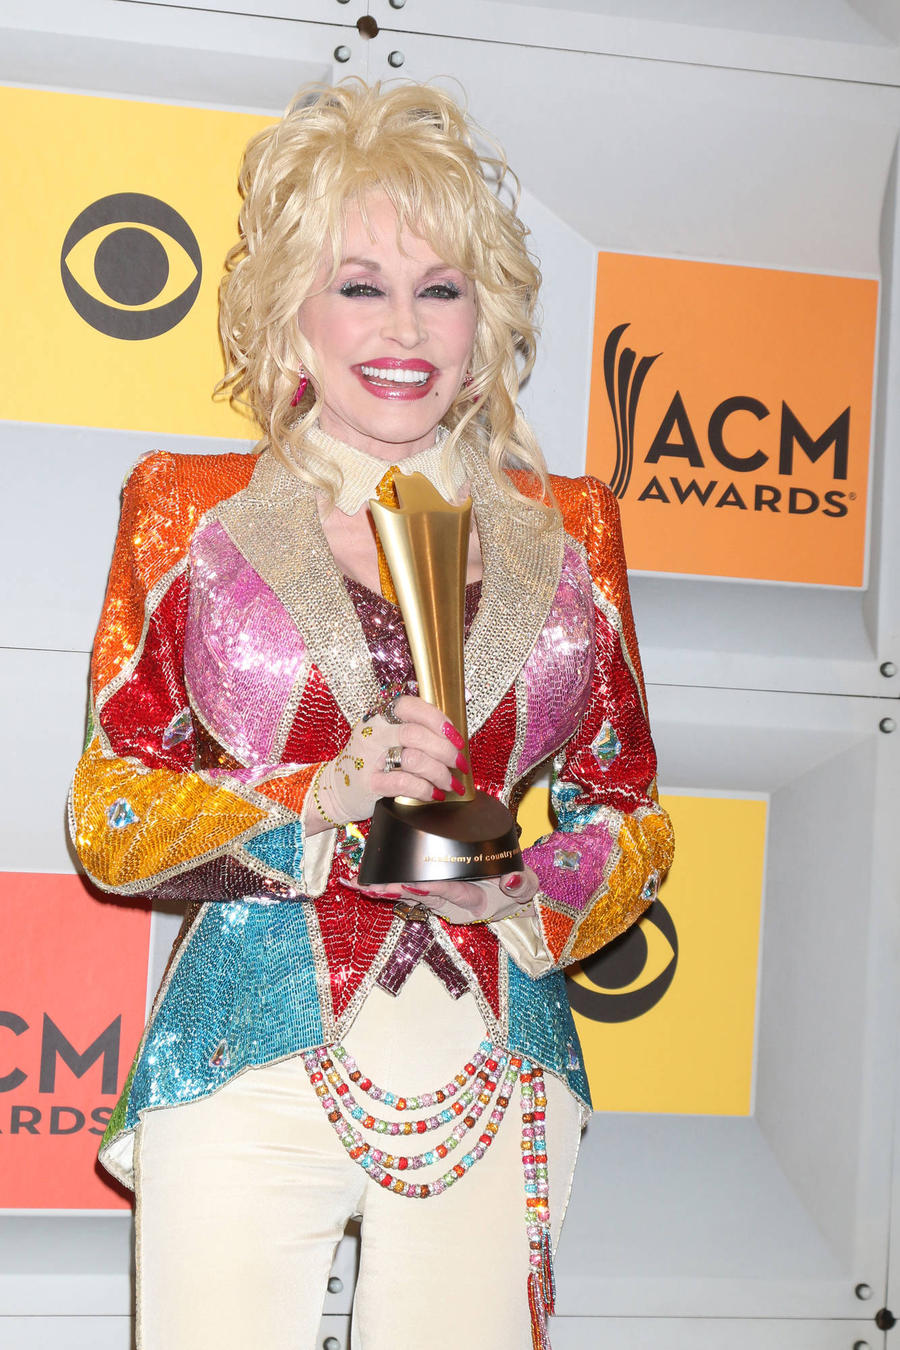 Dolly Parton Threatened To Shoot A Man Who Once Mistook Her For A Prostitute